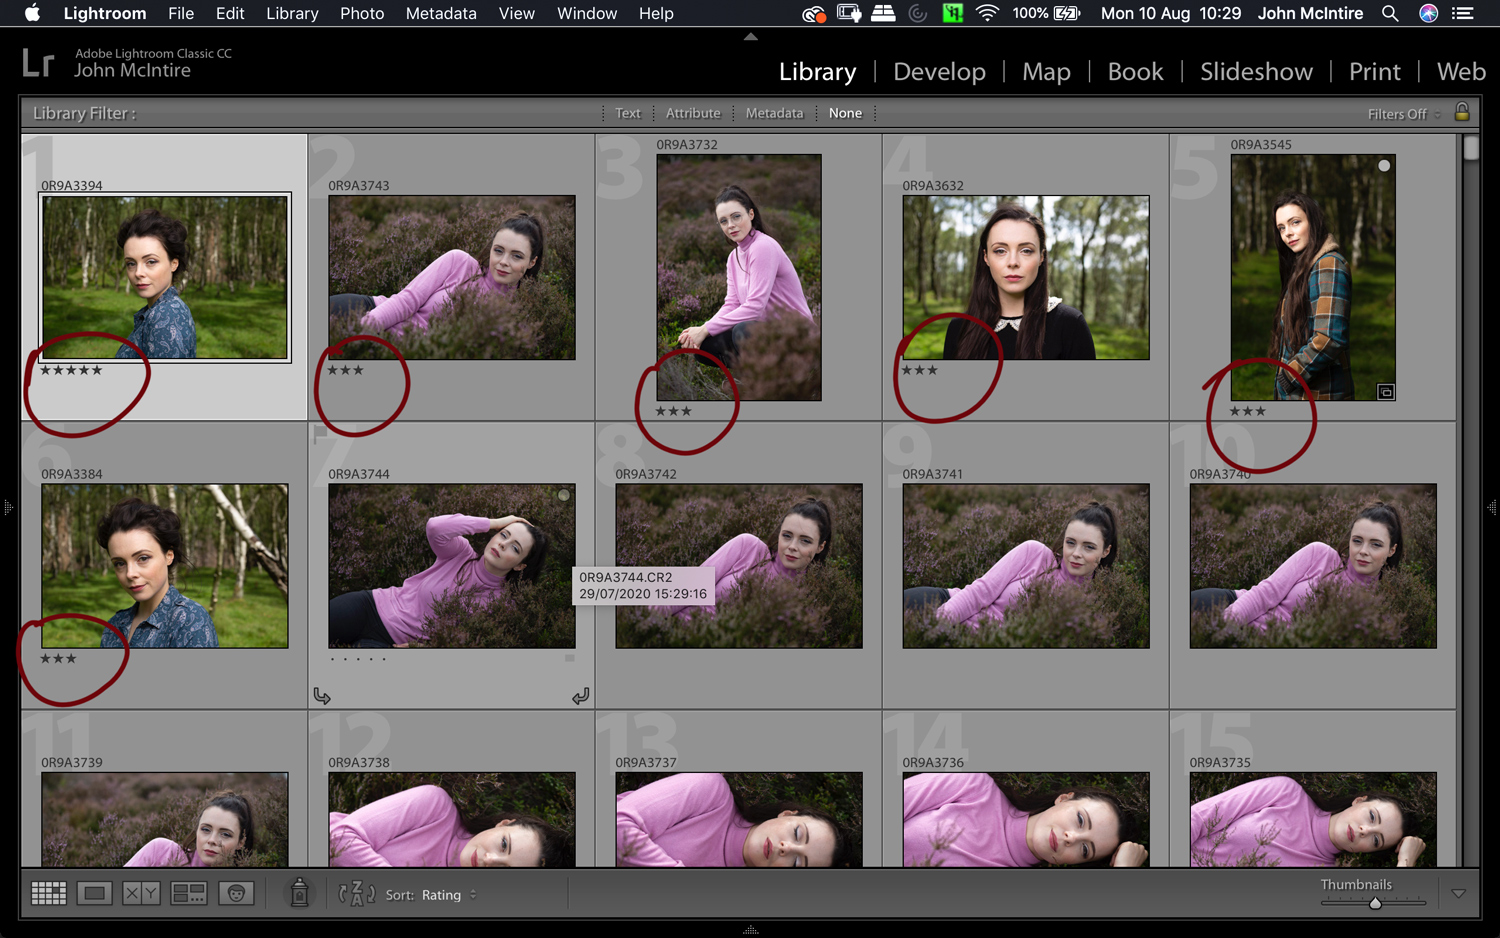 culling images using the Lightroom star ratings